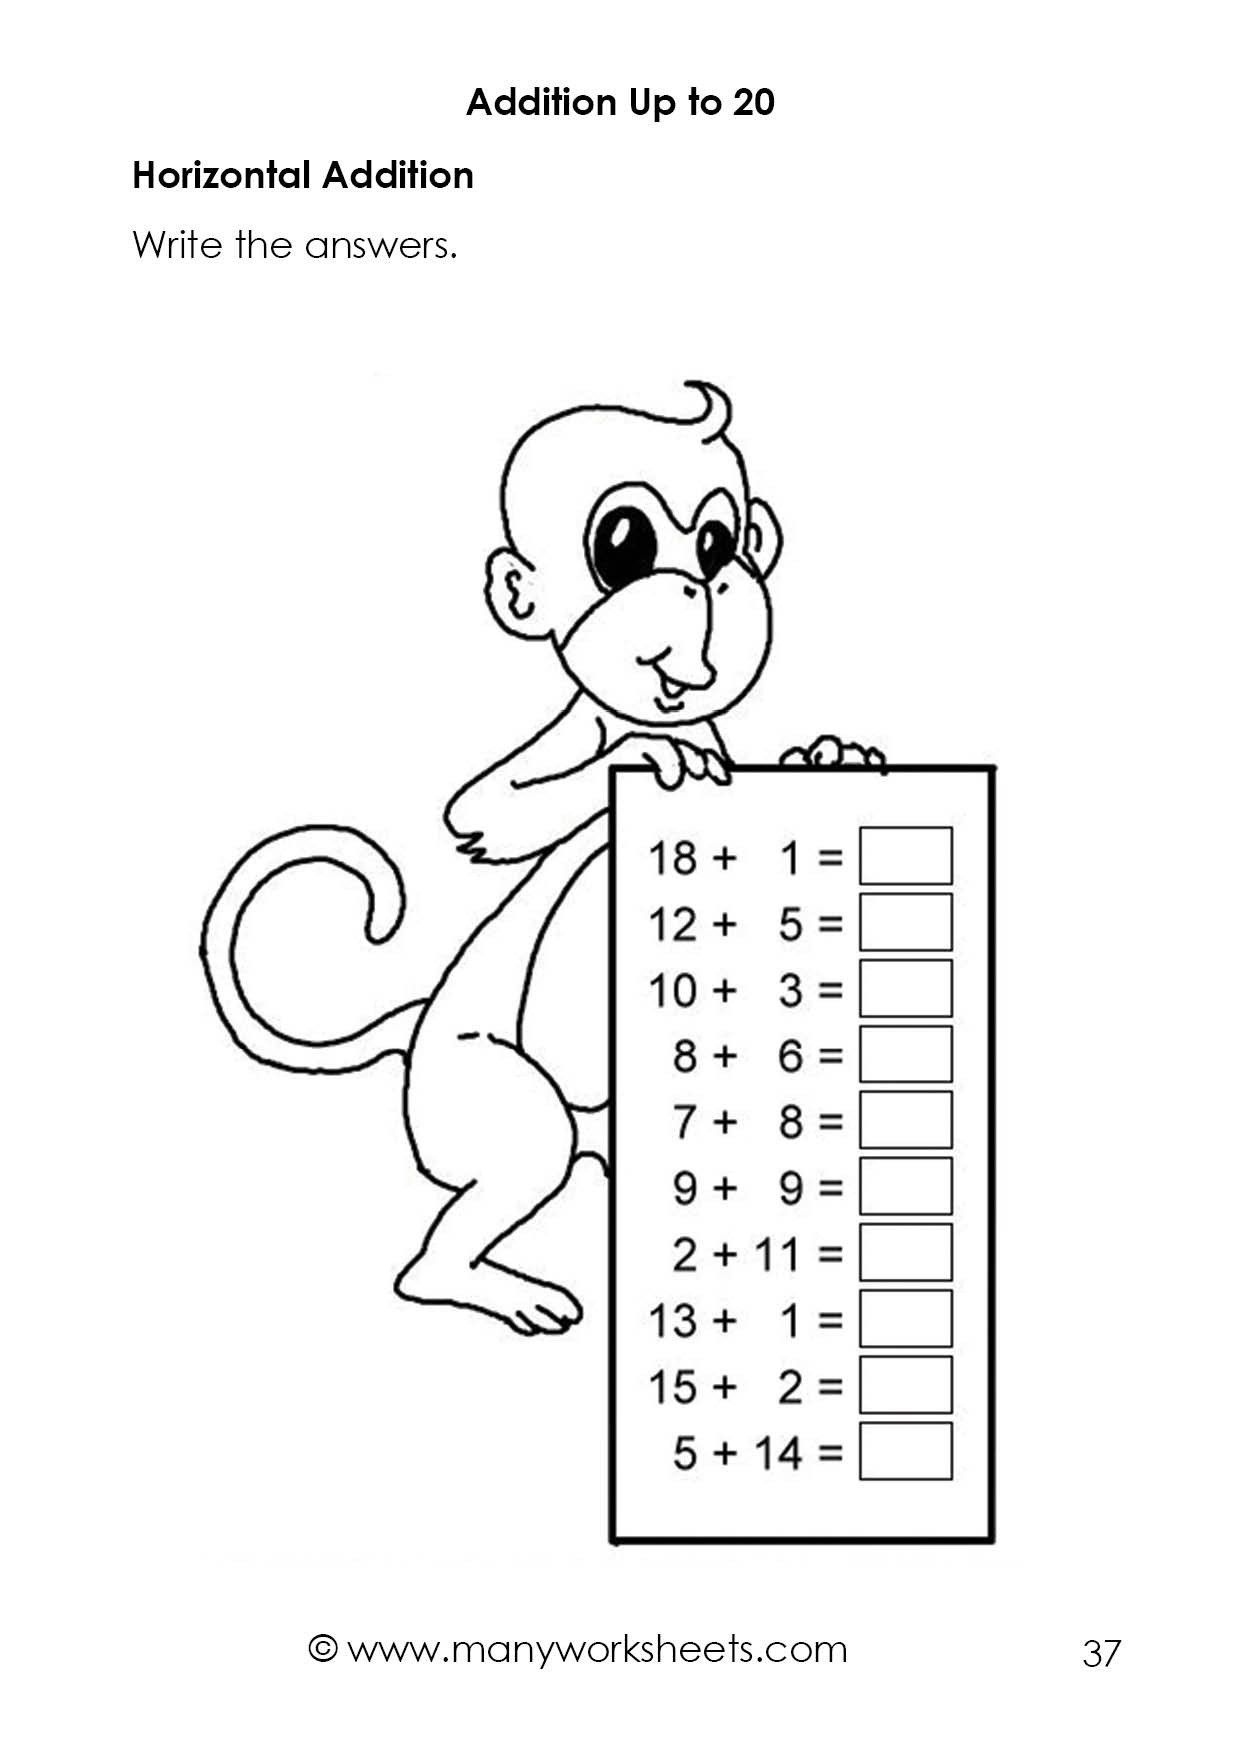 Simple Addition Worksheets Kindergarten Horizontal Addition Worksheets – Adding Numbers Up to 20